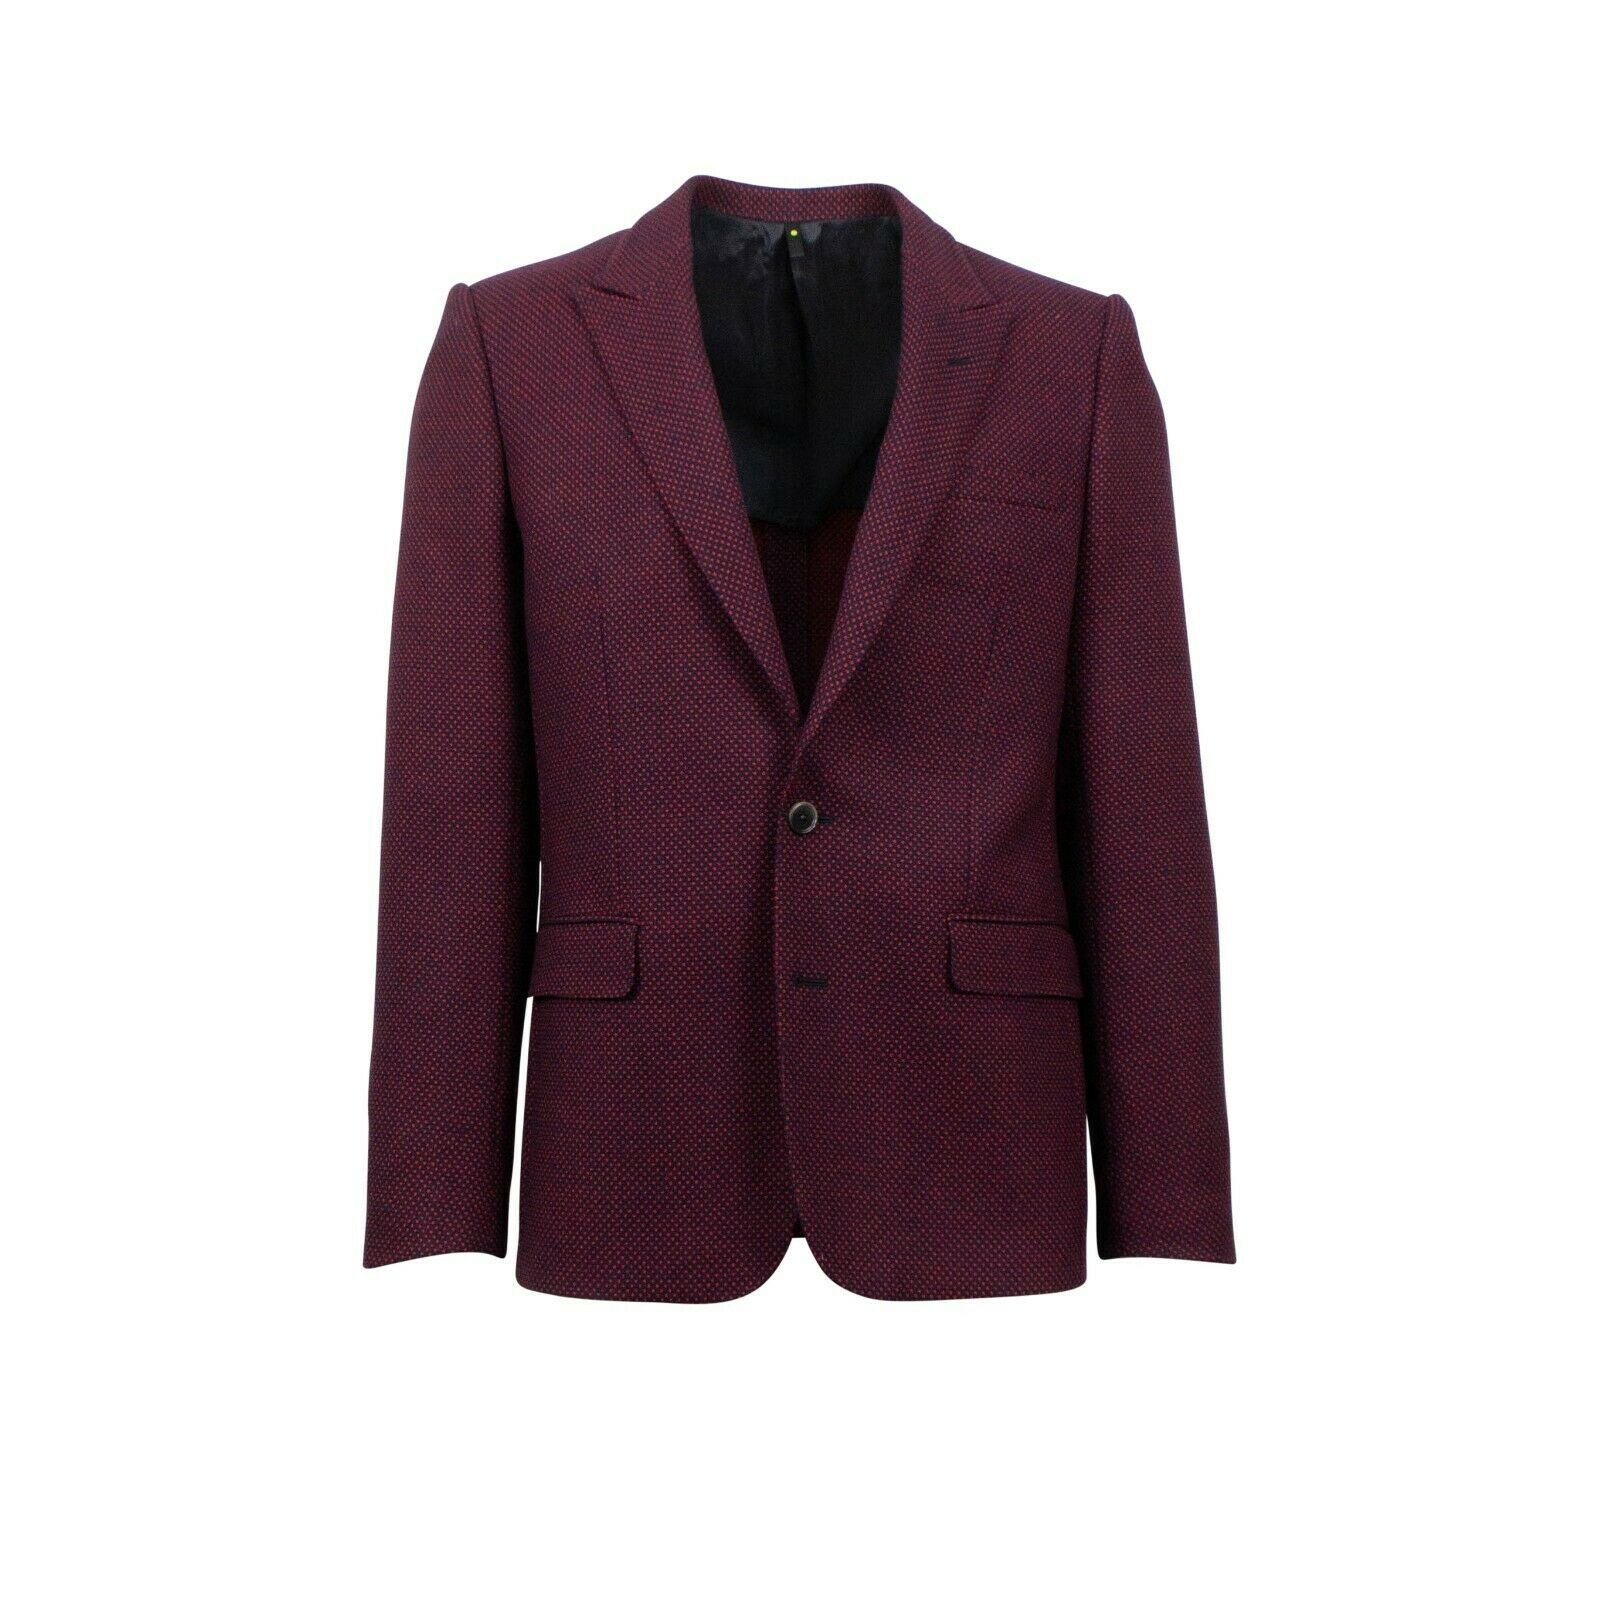 NWT CARUSO Maroon Wool Two Button Sport Coat 46 36 R Drop 10